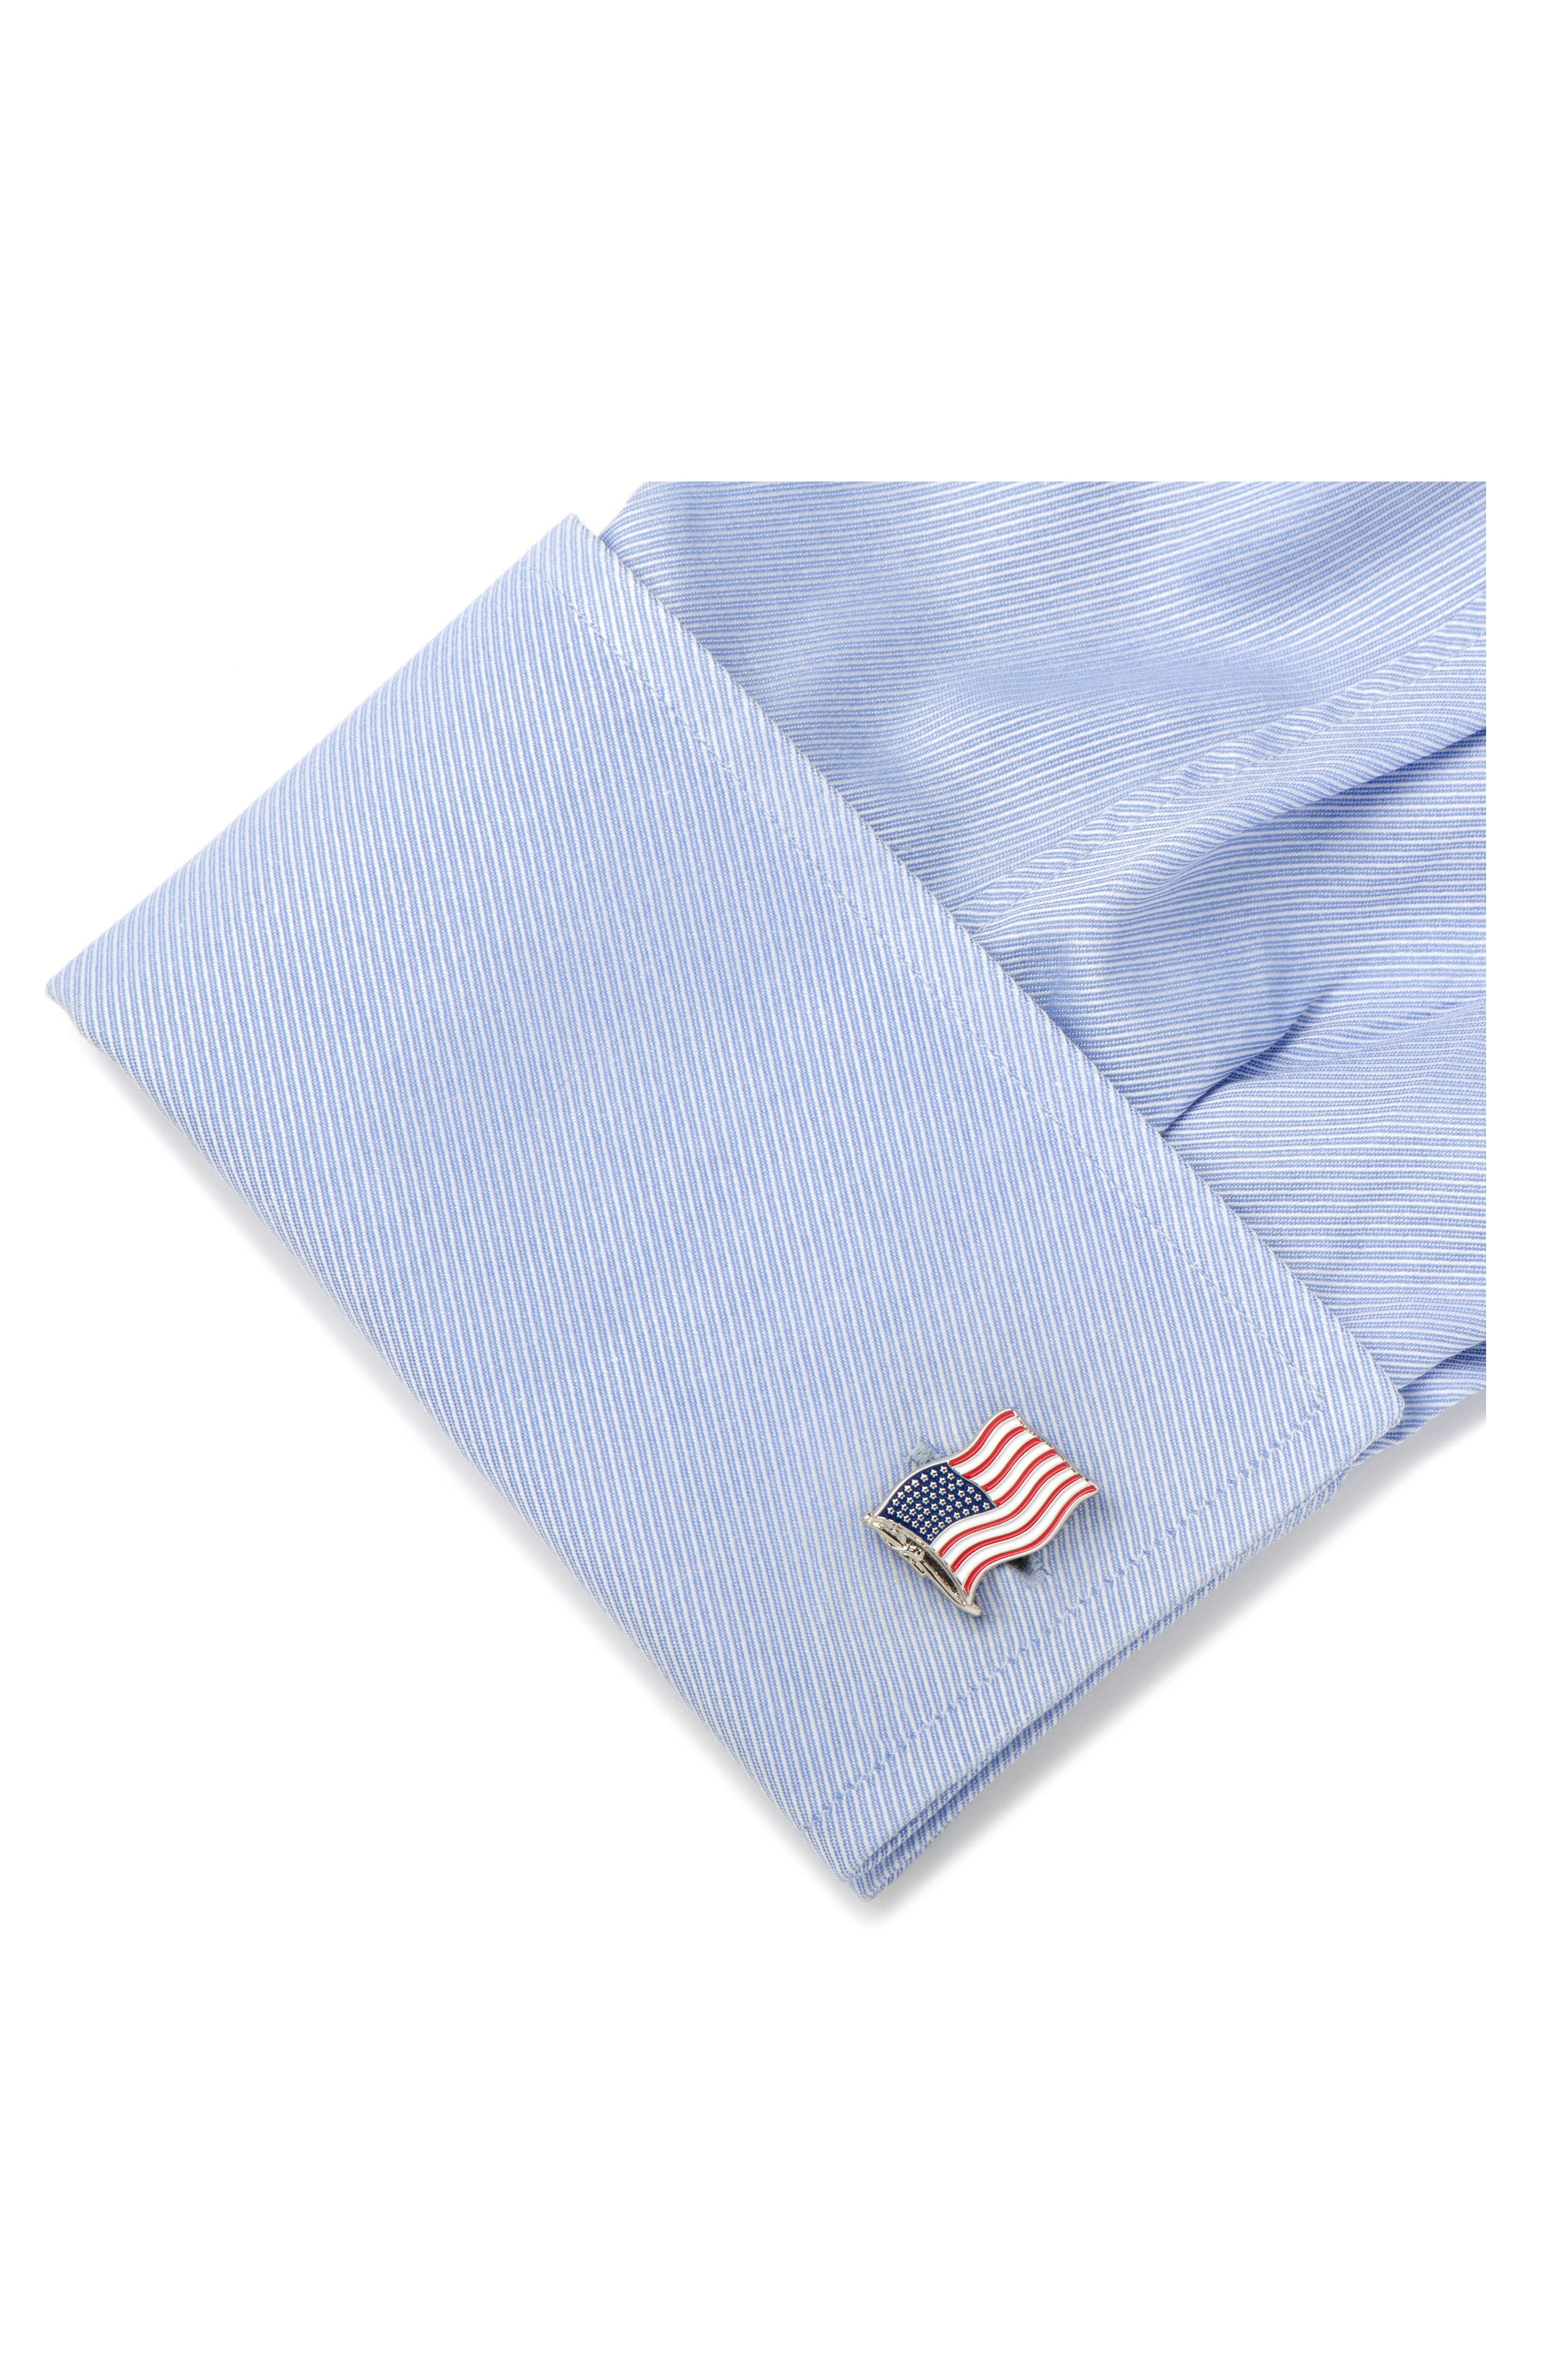 Waving American Flag Cuff Links,                             Alternate thumbnail 2, color,                             RED